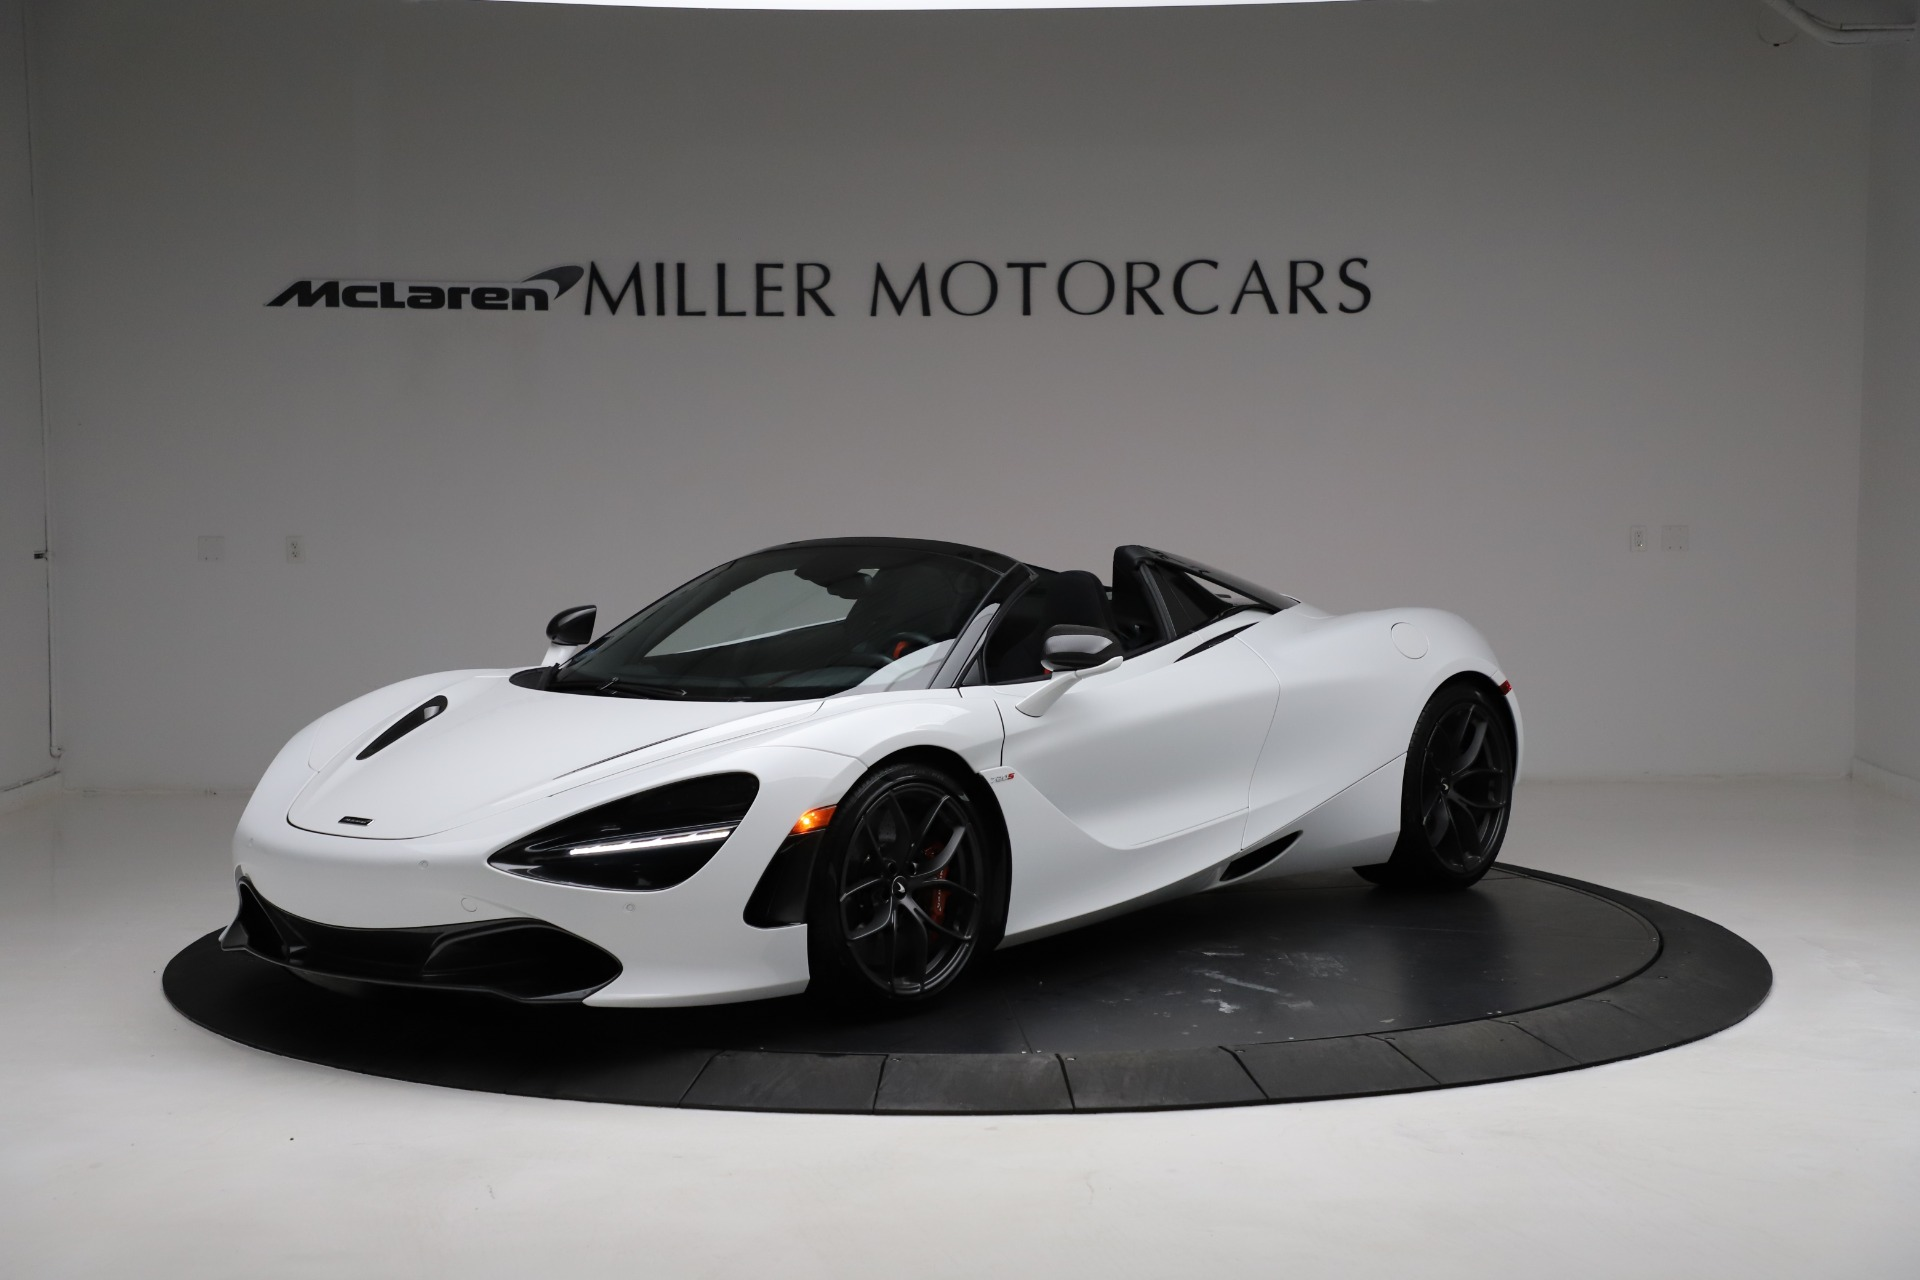 Used 2020 McLaren 720S Spider for sale Sold at Pagani of Greenwich in Greenwich CT 06830 1